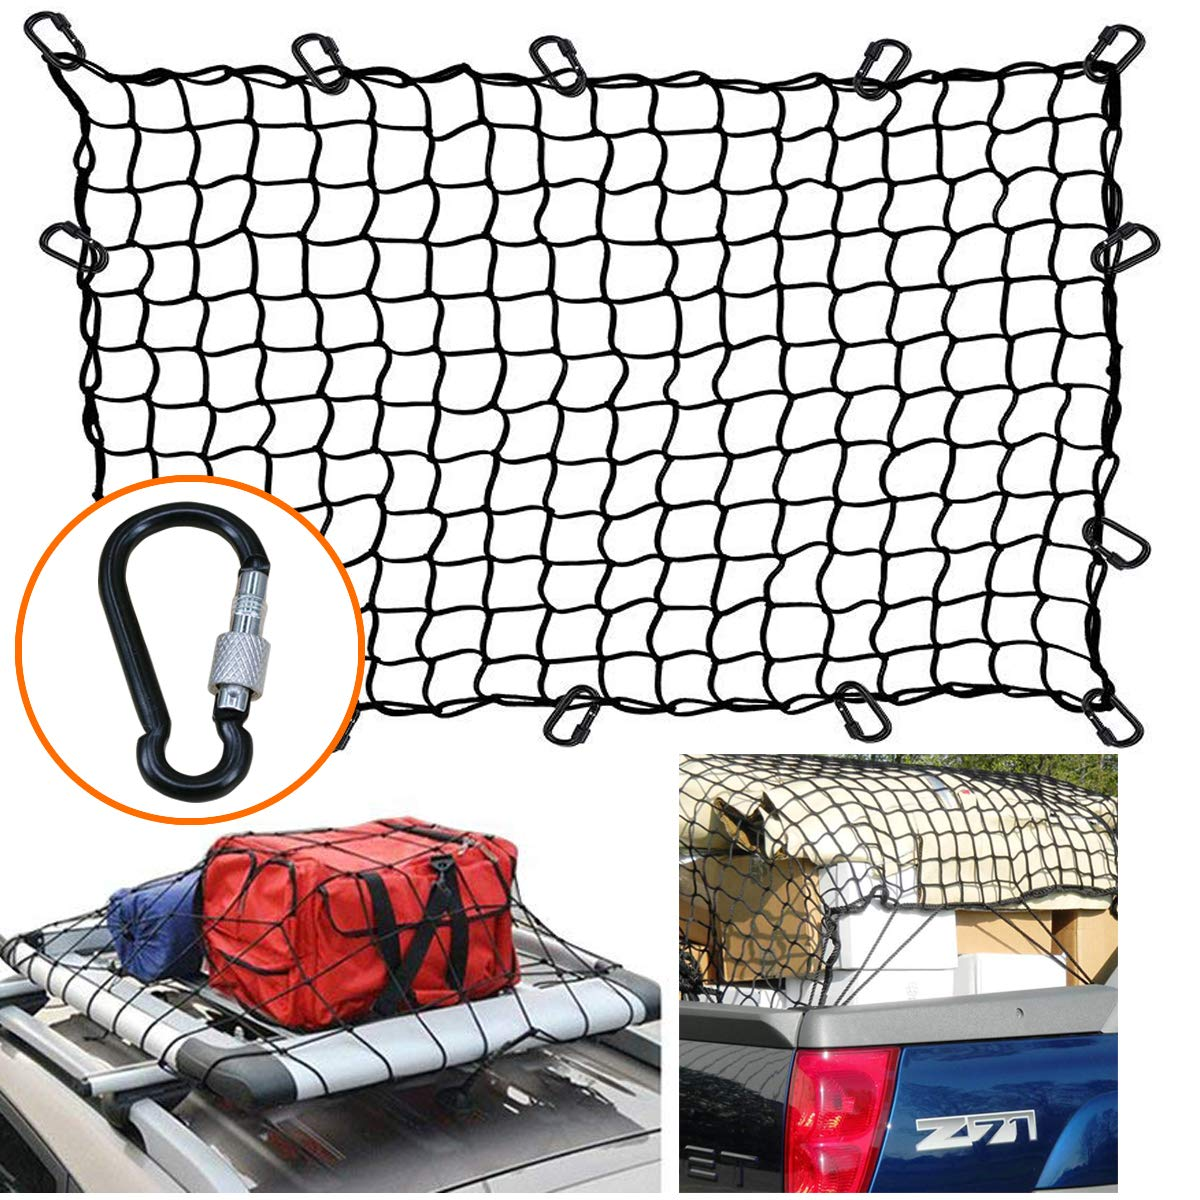 GoBig Cargo Net 4' X6' Super Duty Bungee Cargo Net Stretches to 8'x12' 12 Tangle-Free D Clip Carabiners for Rooftop Cargo Carrier ATV UTV Cargo Hitch